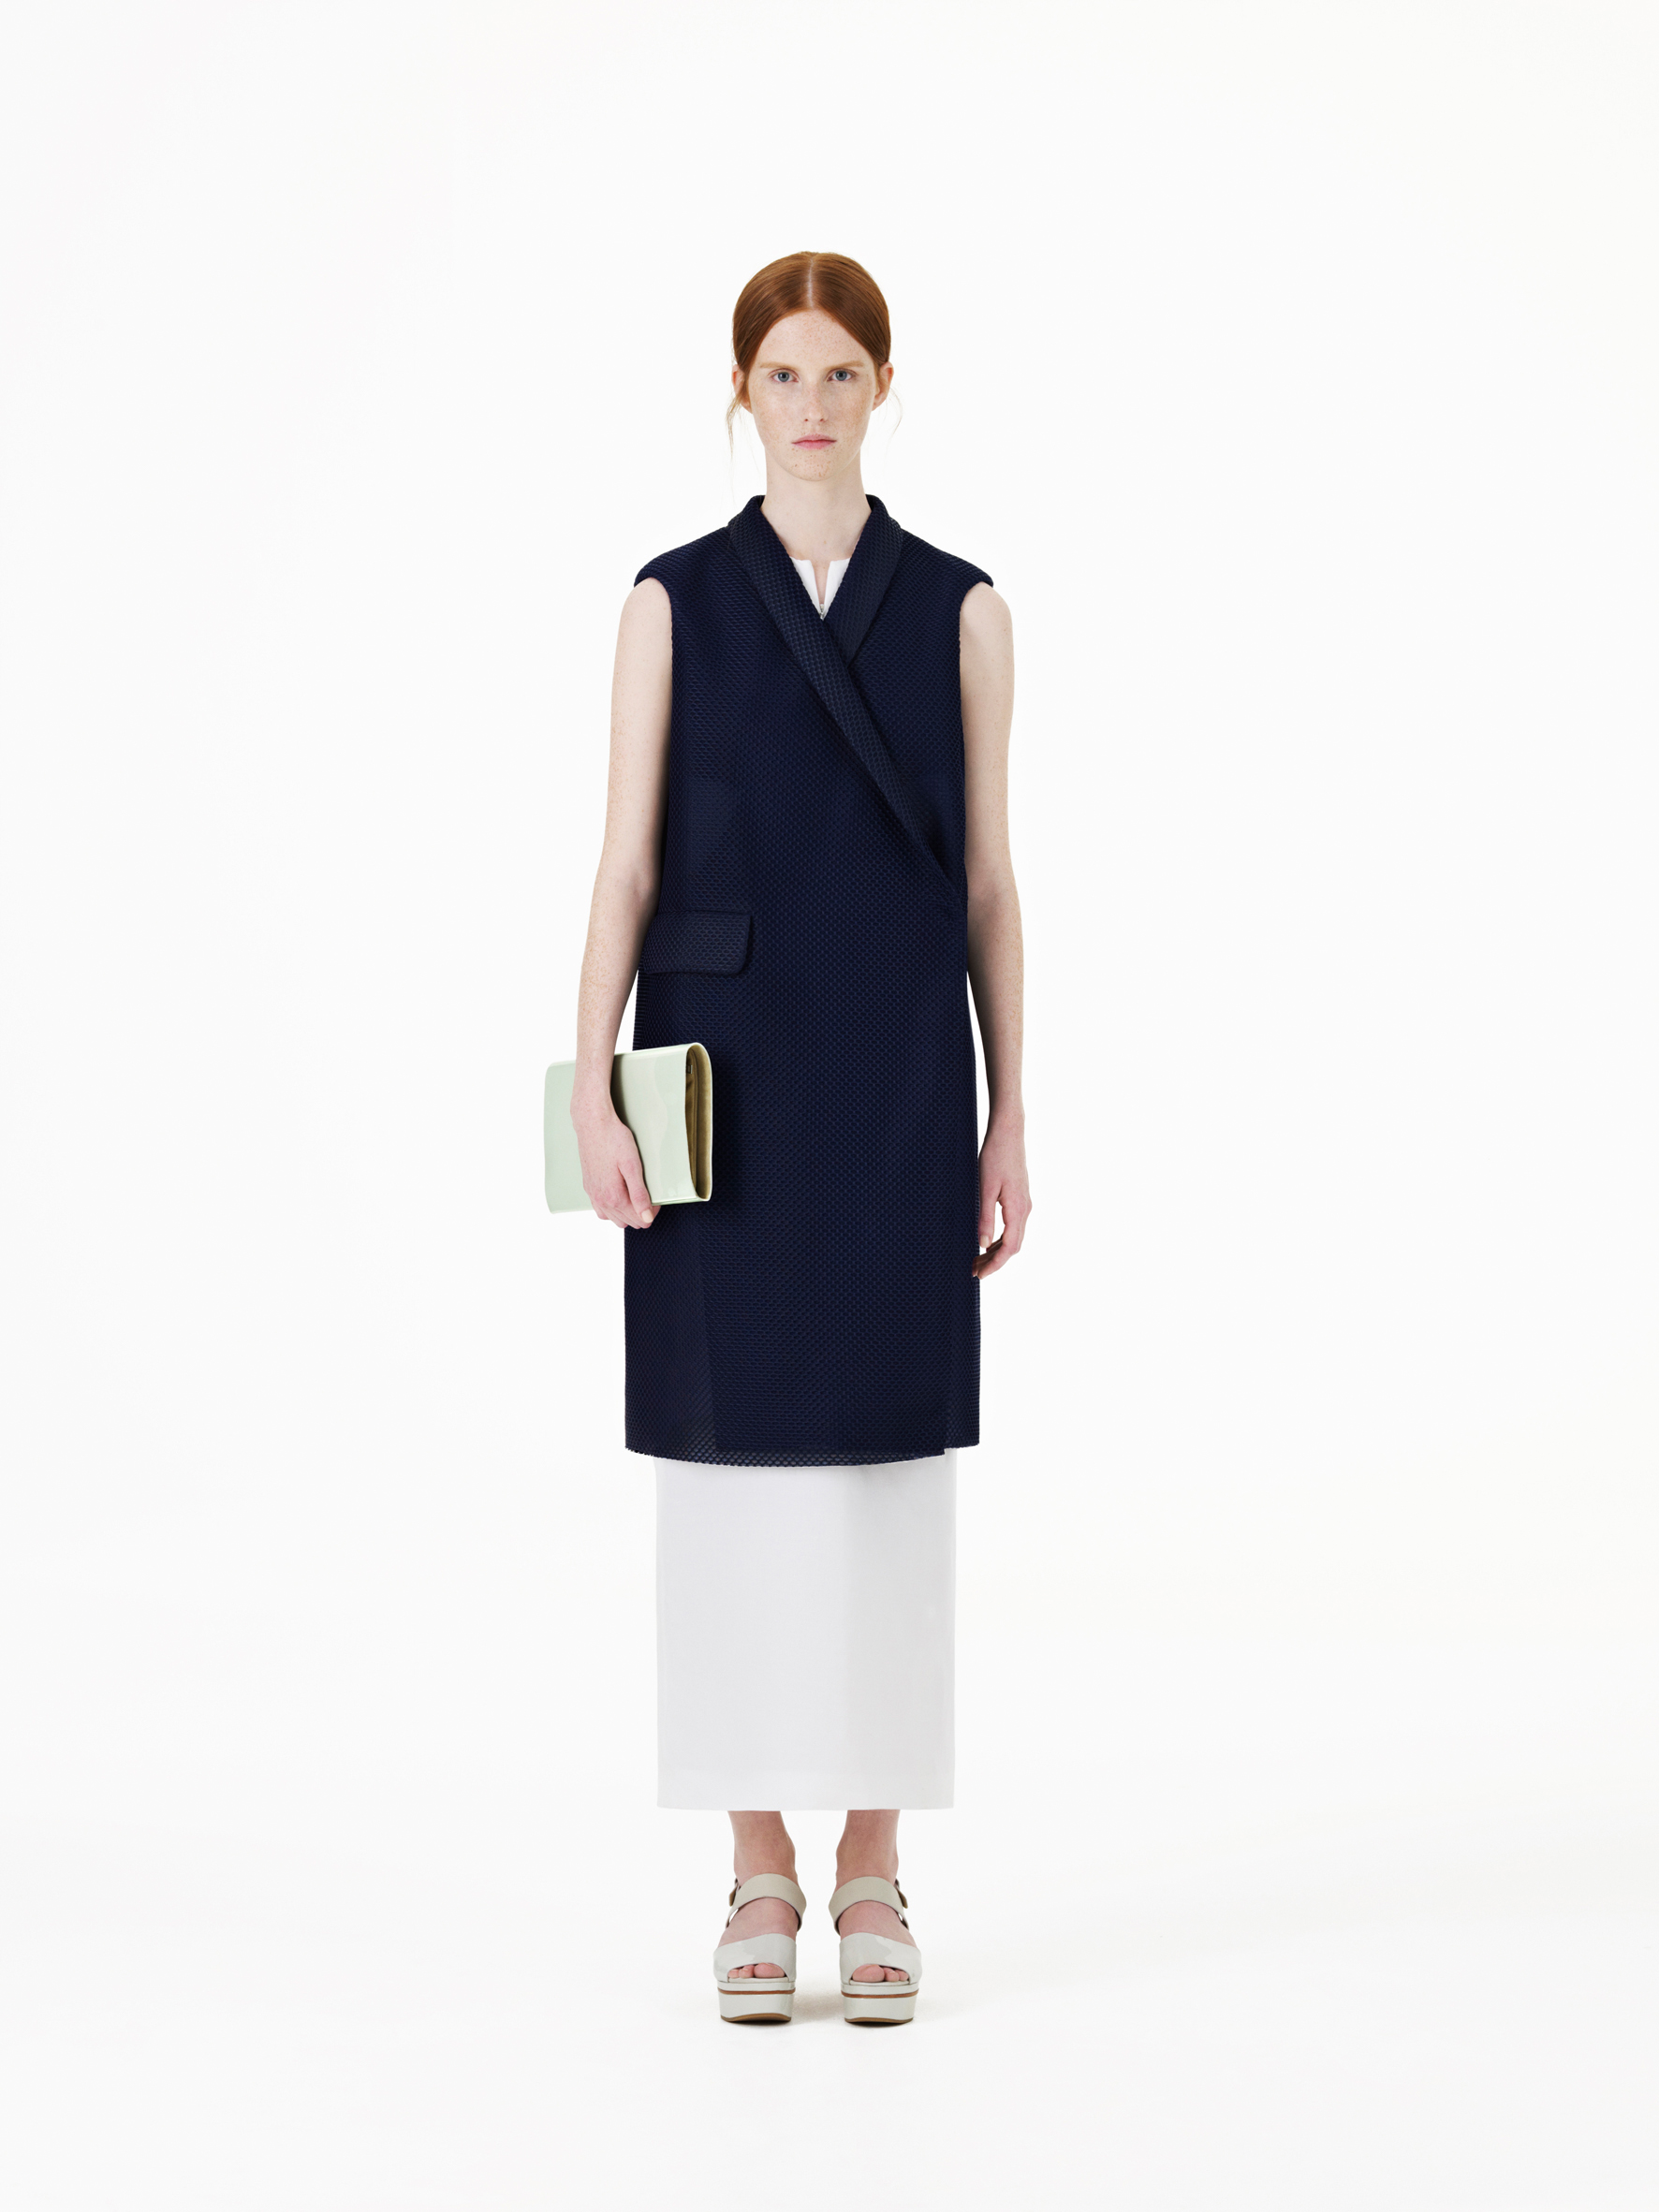 COS_SS14_WOMENS_12_lowres